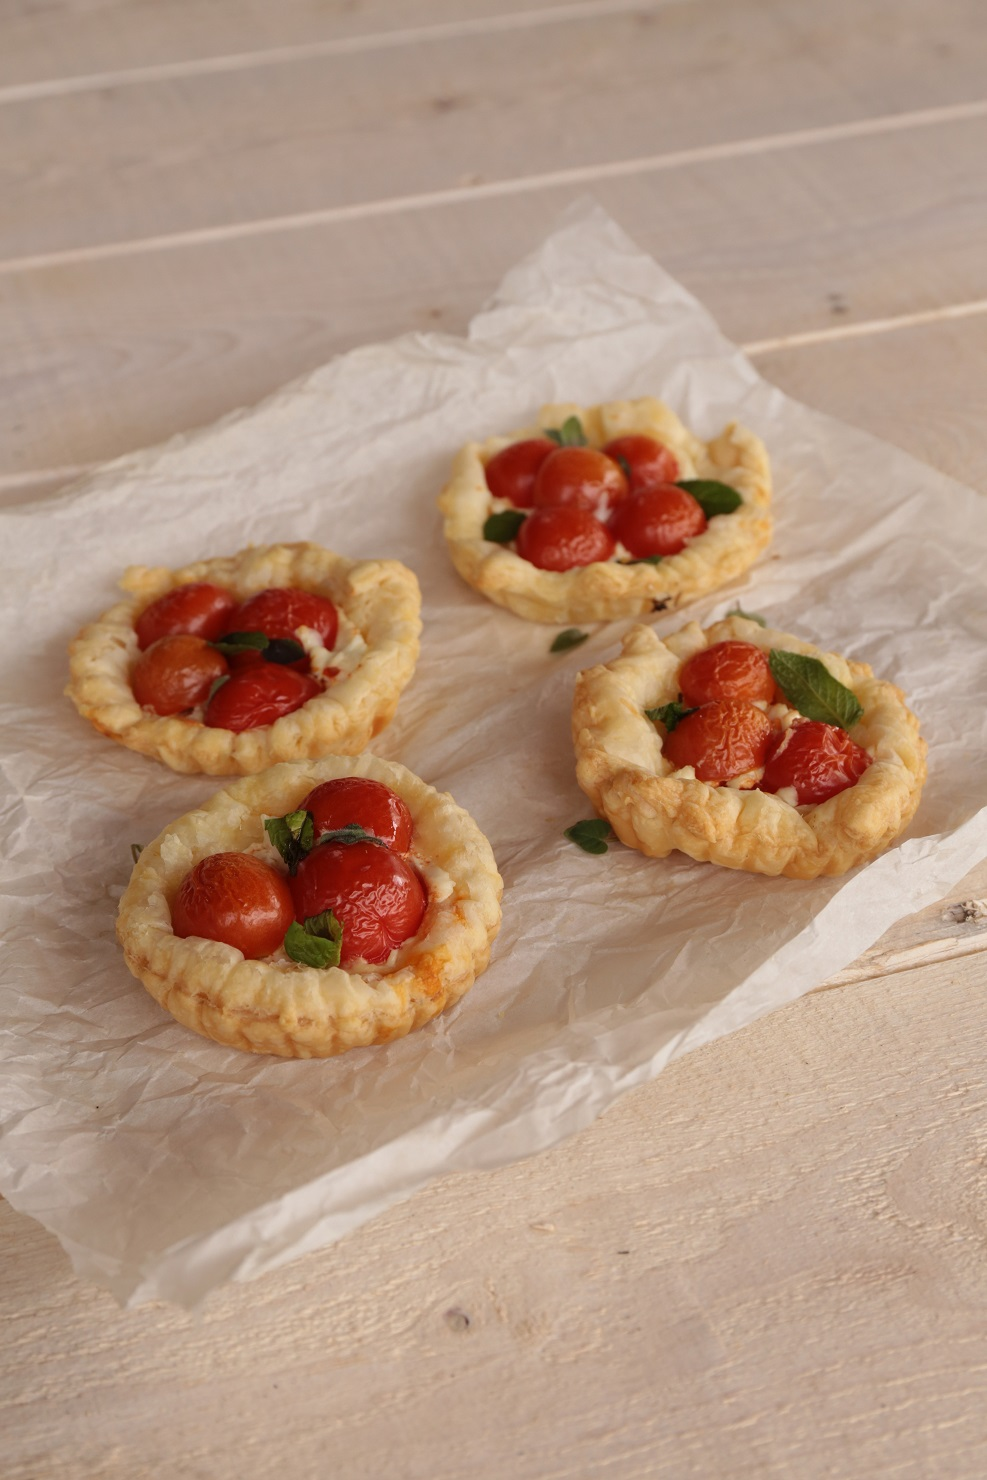 Cherry Tomatoes with Soft Cheese in Puff Pastry